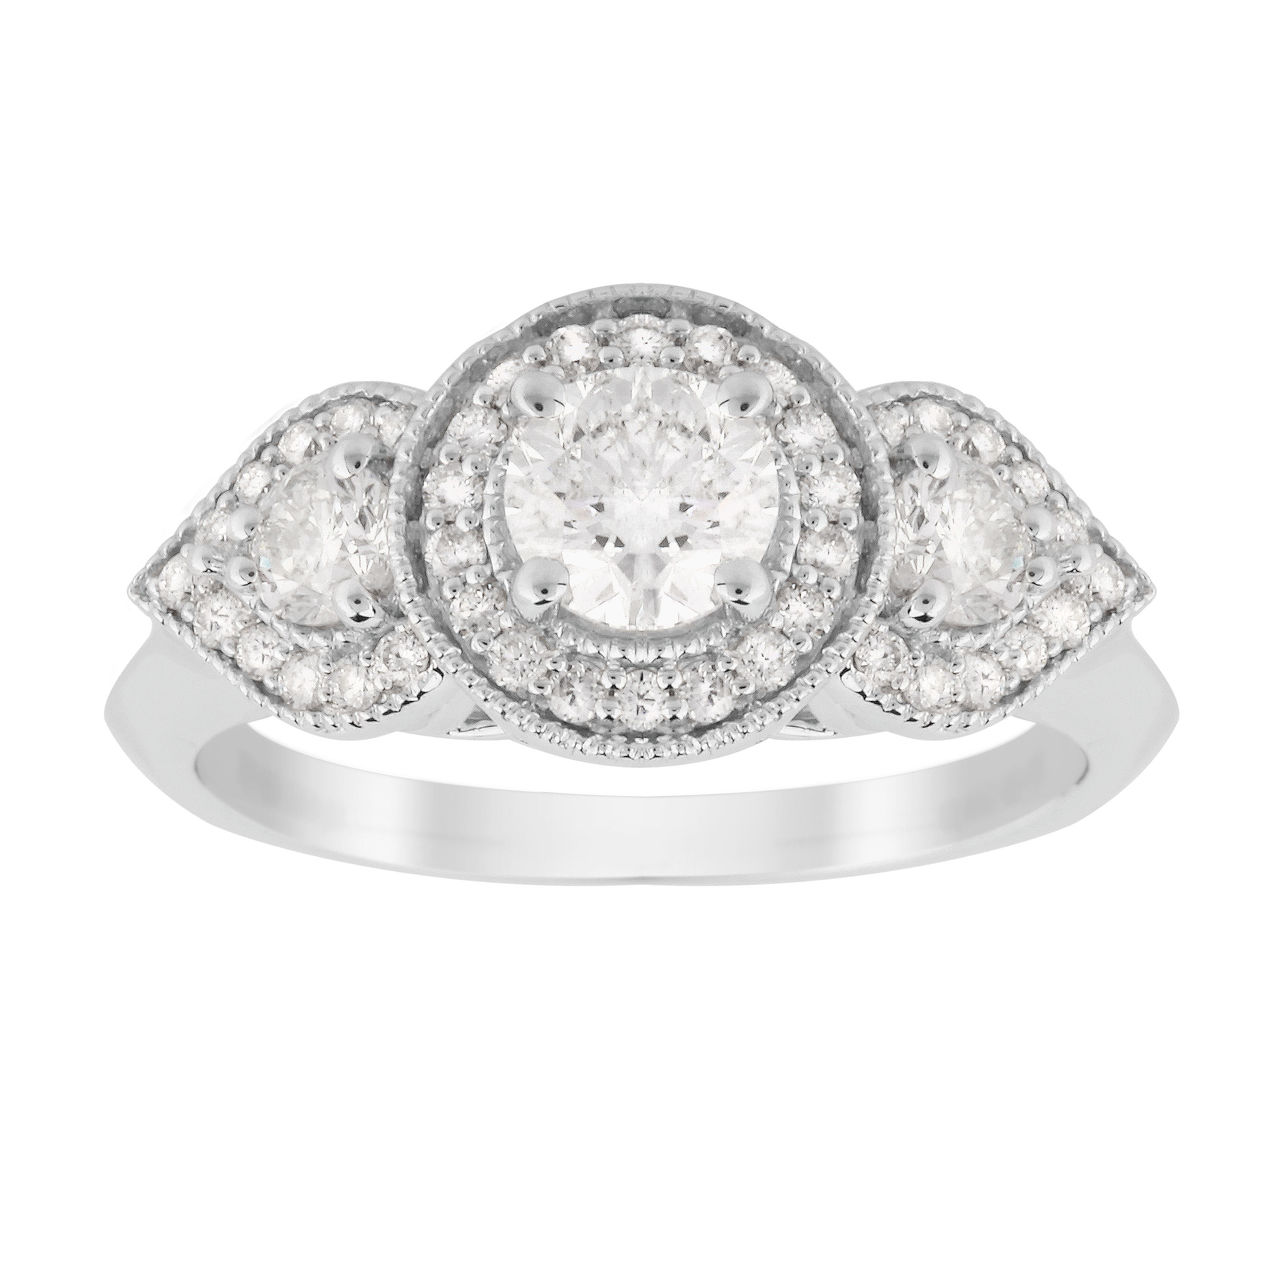 Jenny Packham Three Stone Brilliant Cut 0.95 Carat Total Weight Diamond Art Deco Style Ring in 18 Ca